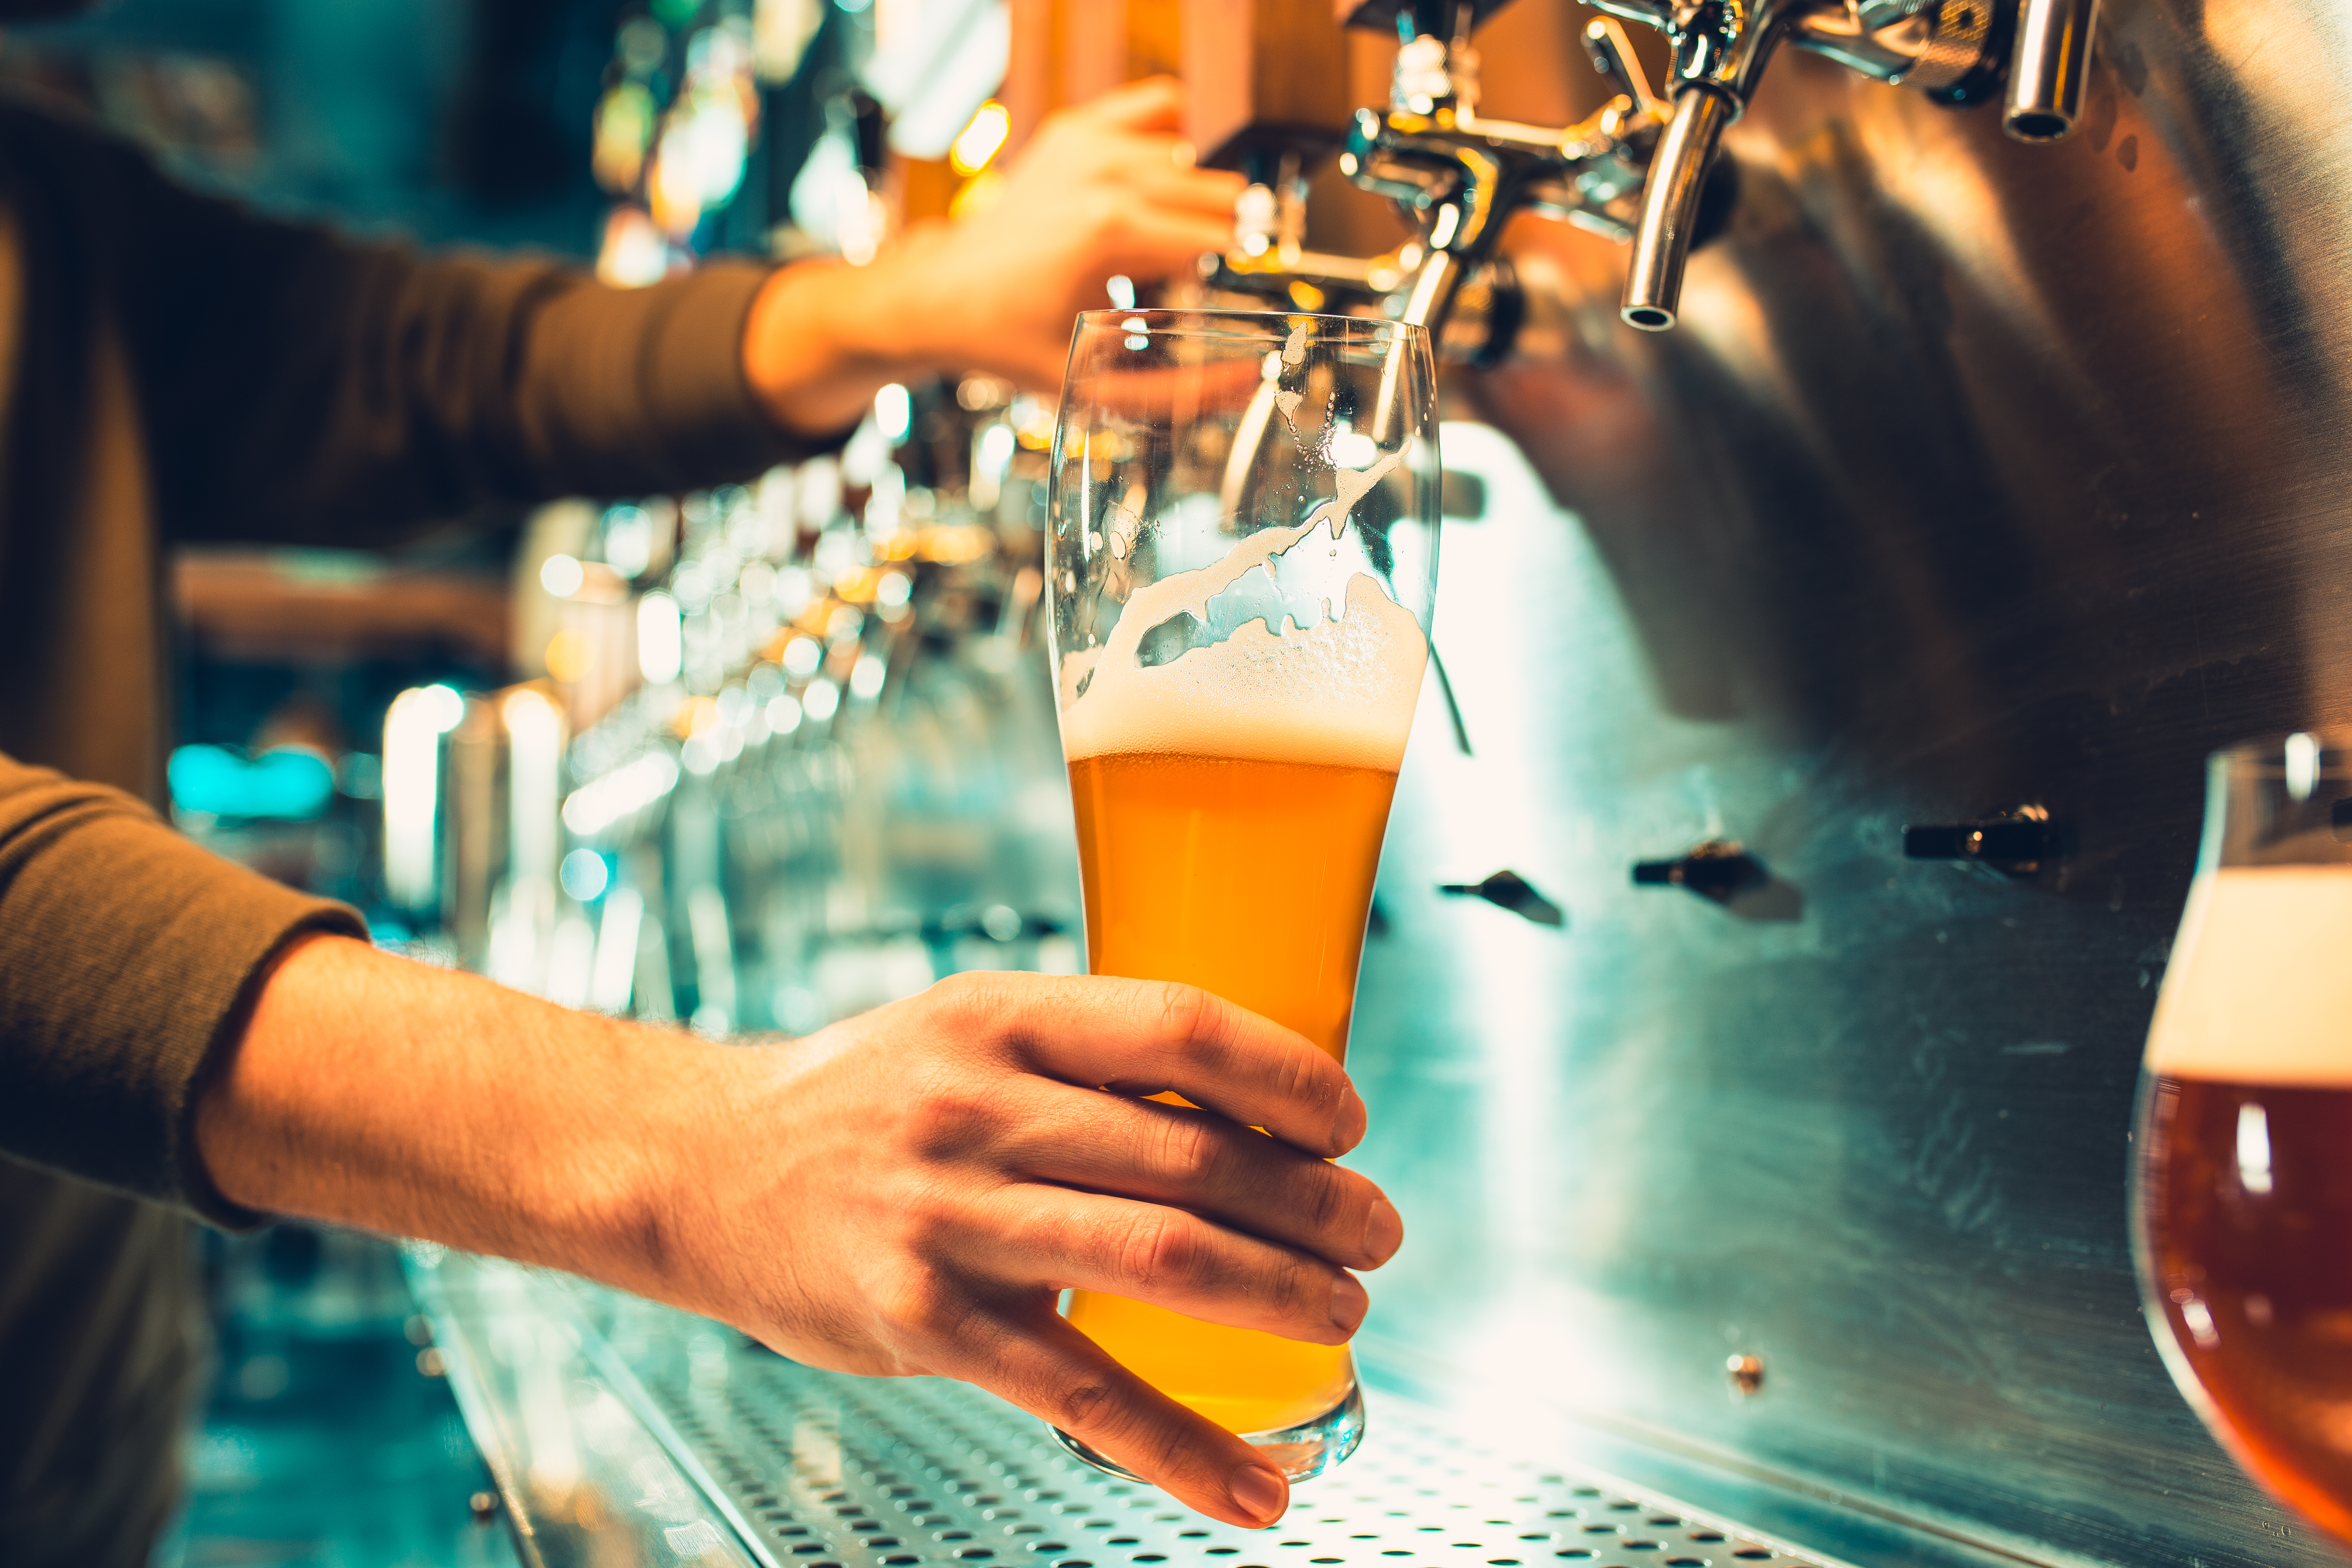 An Exciting New Nanobrewery Heads to Jersey Village